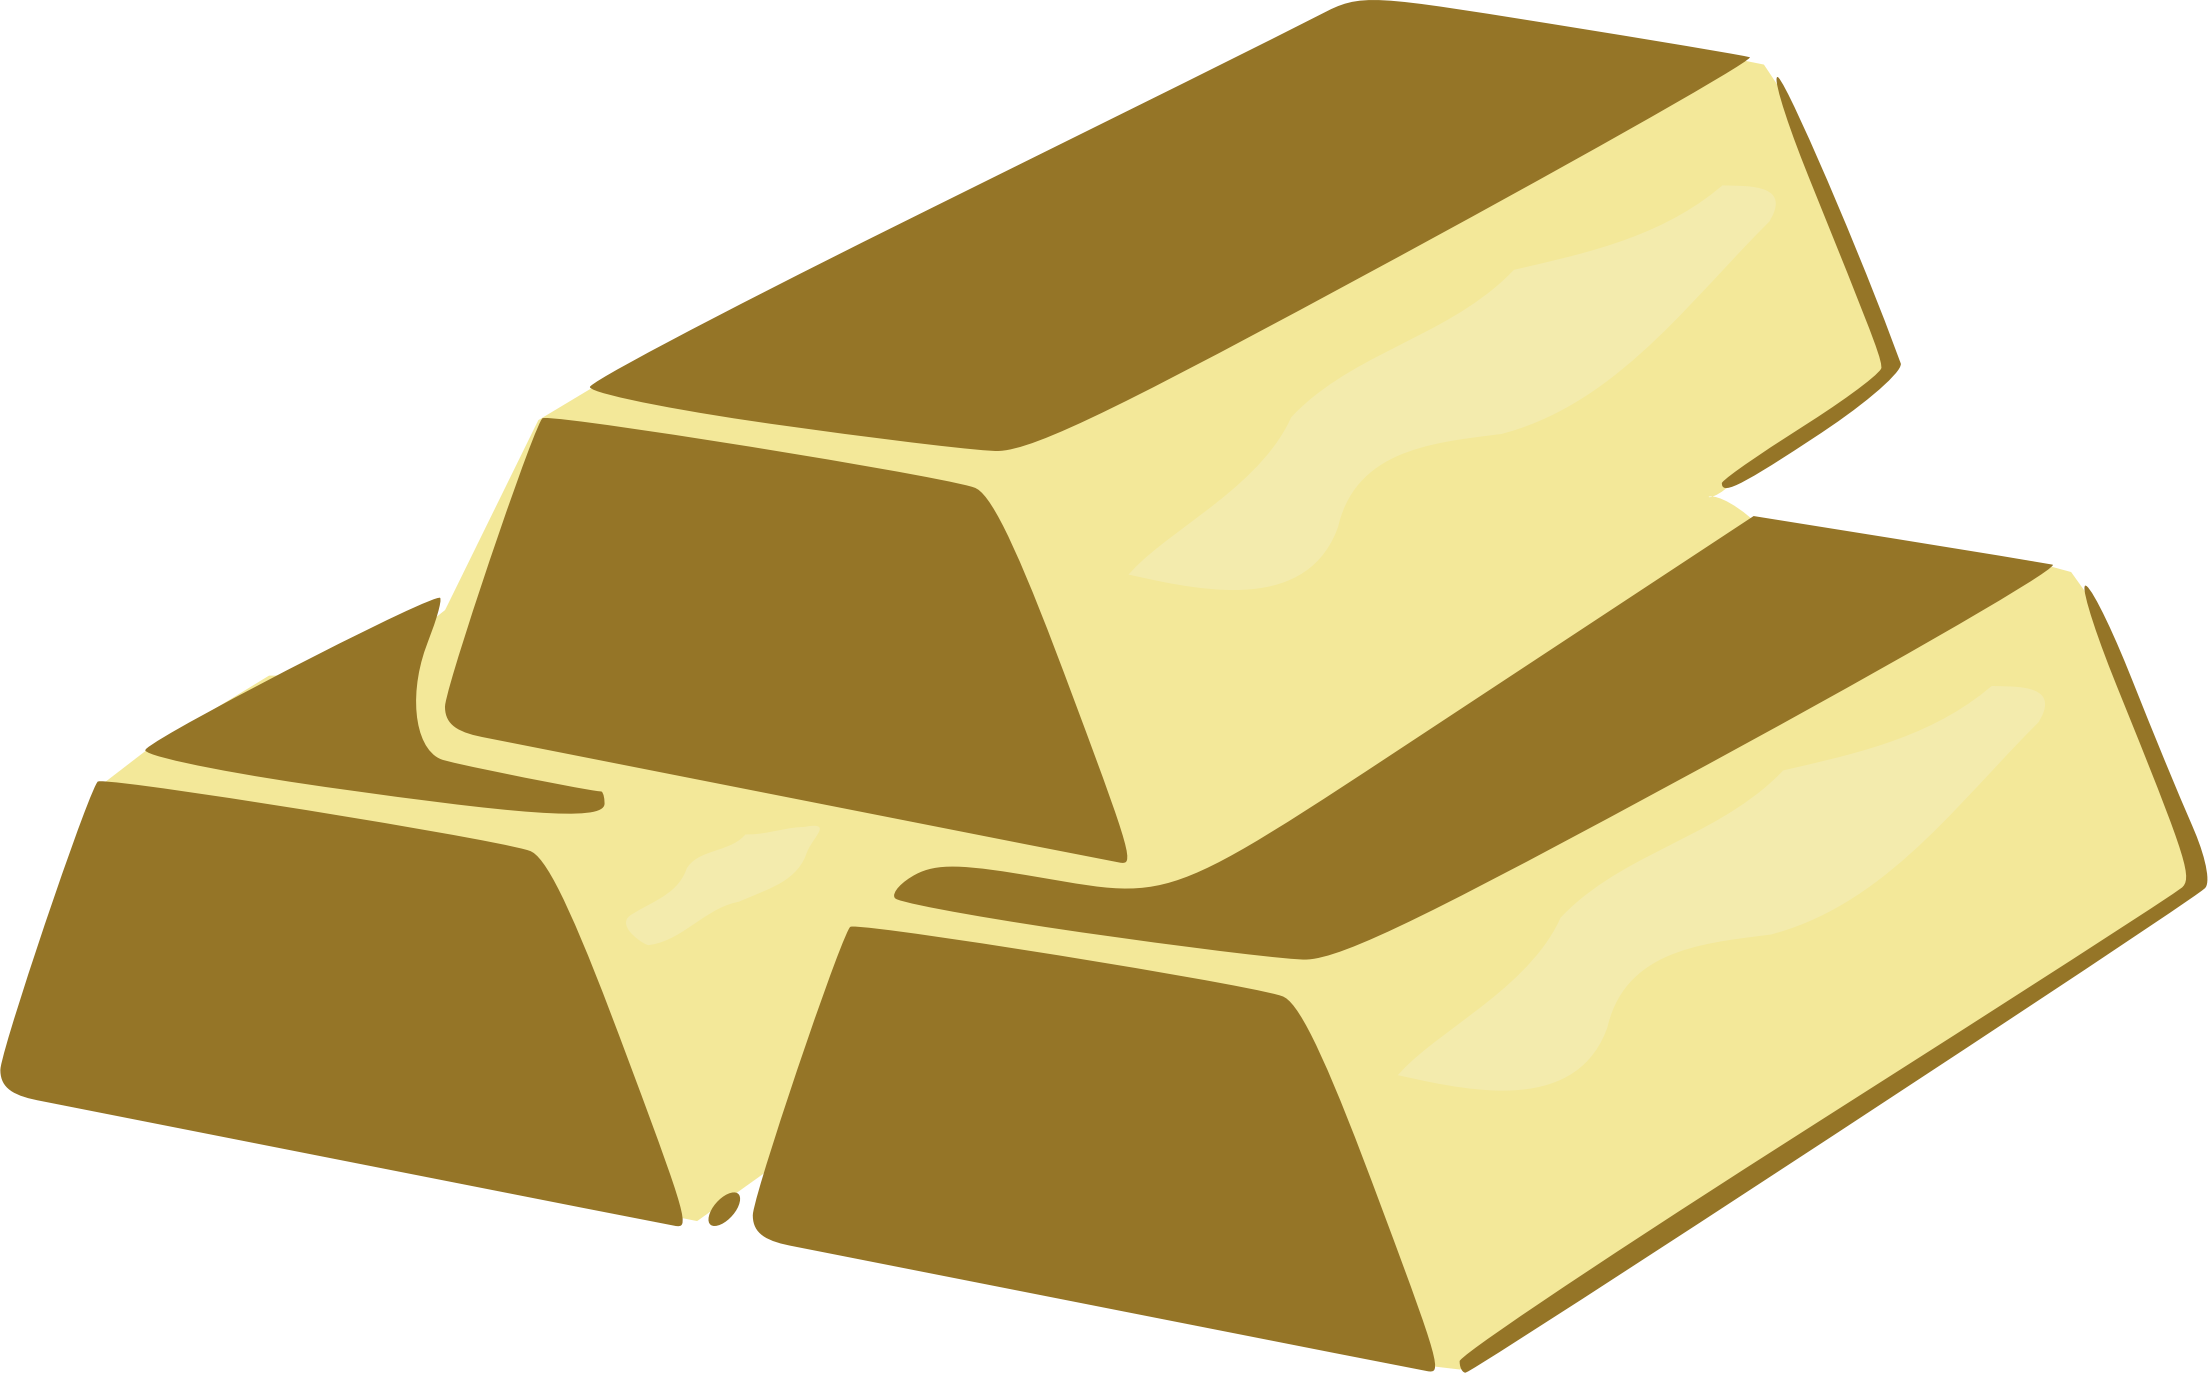 svg Golden clipart gold brick.  collection of high